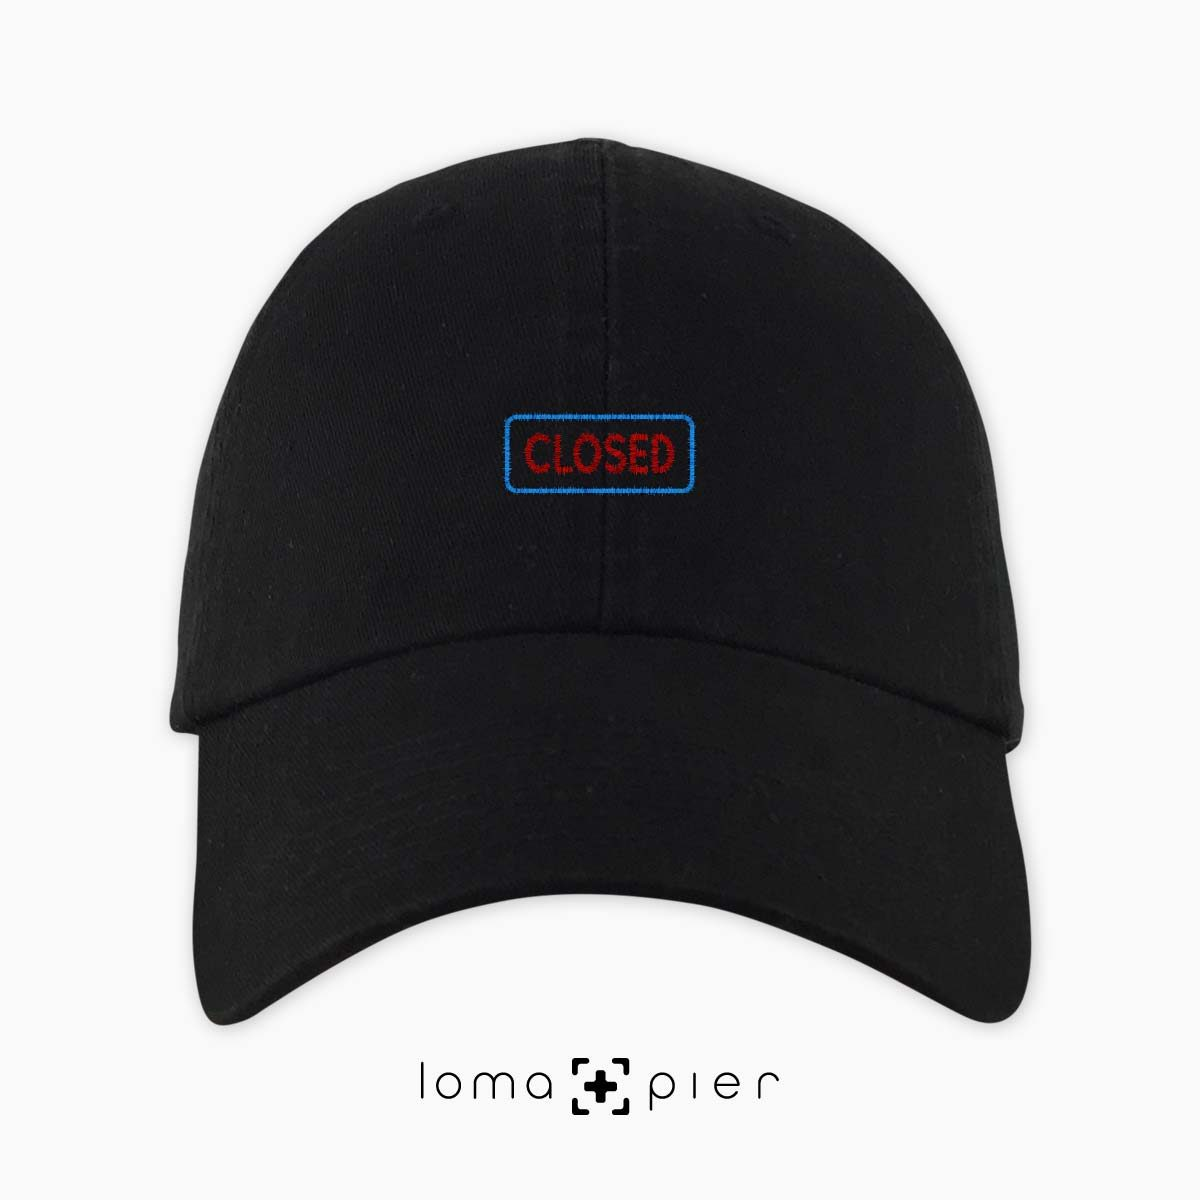 CLOSED SIGN dad hat in black by loma+pier hat store